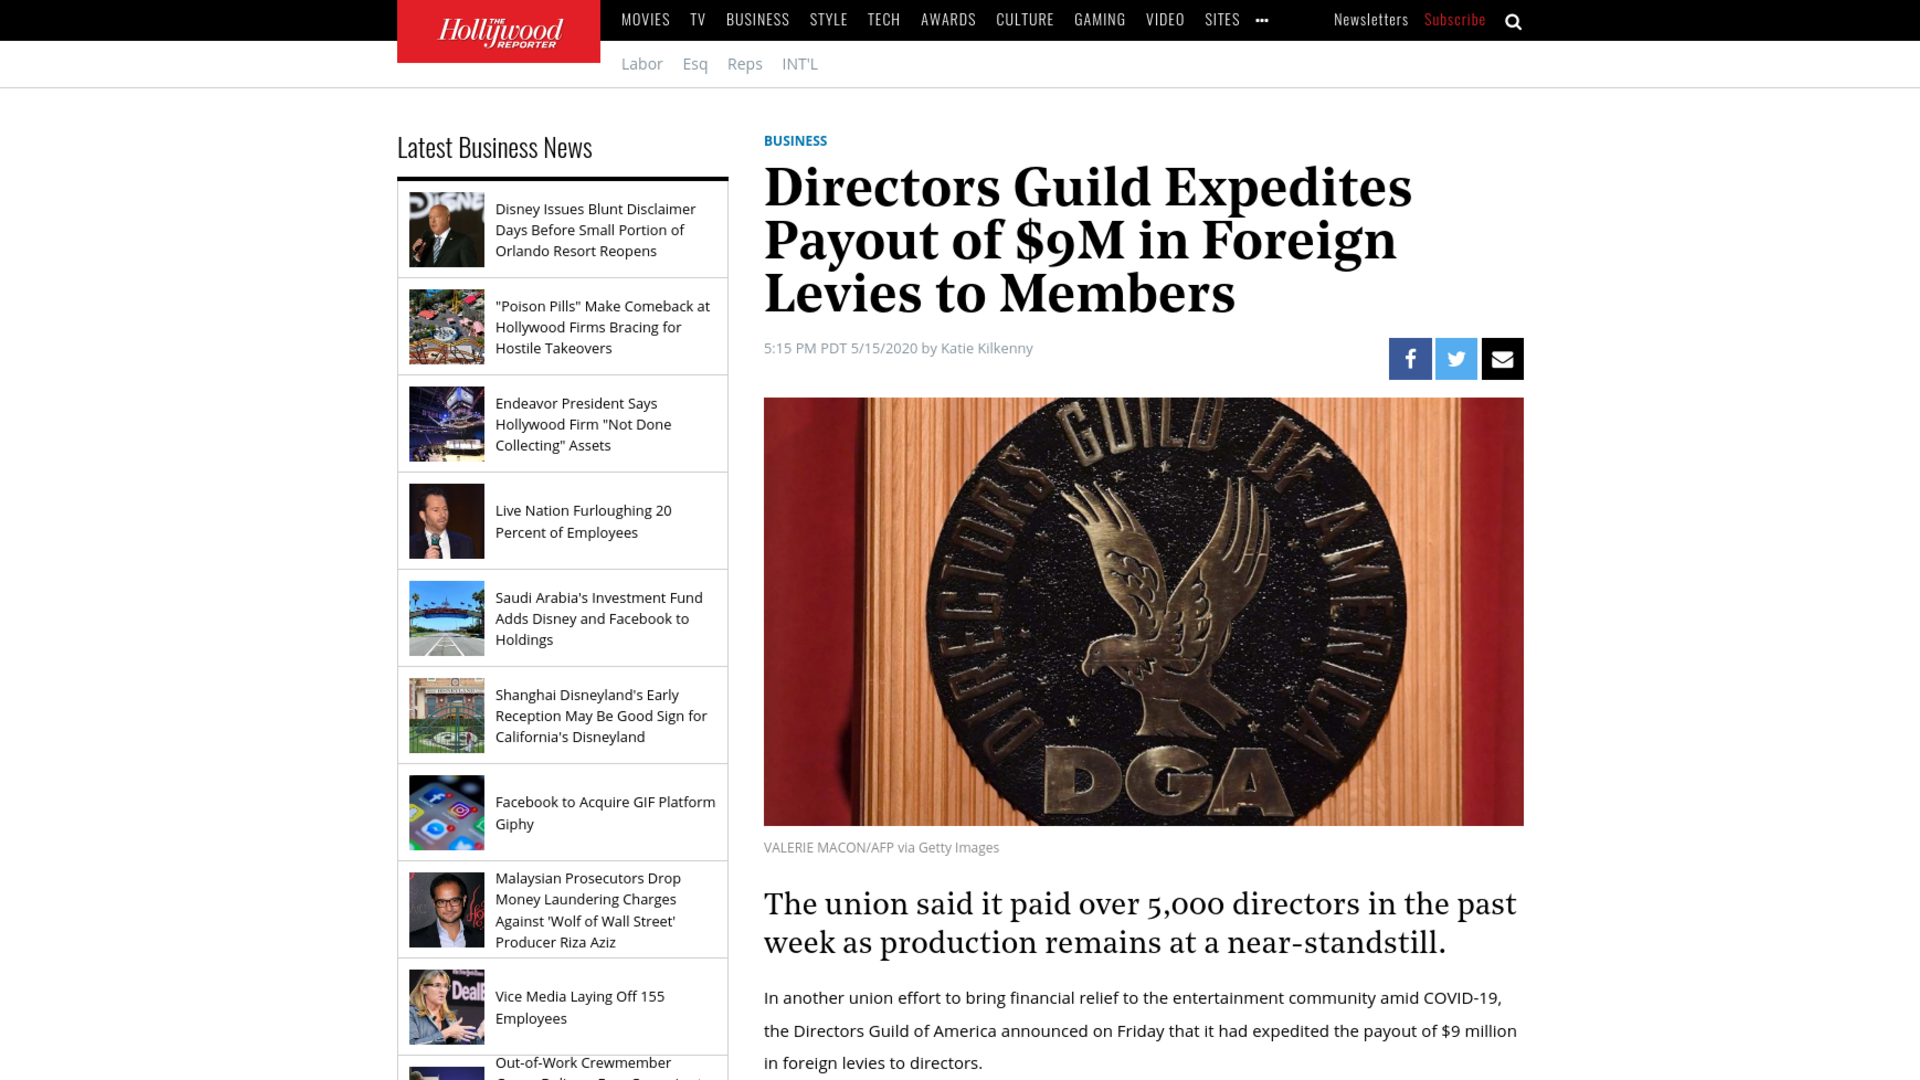 Fairness Rocks News Directors Guild Expedites Payout of $9M in Foreign Levies to Members